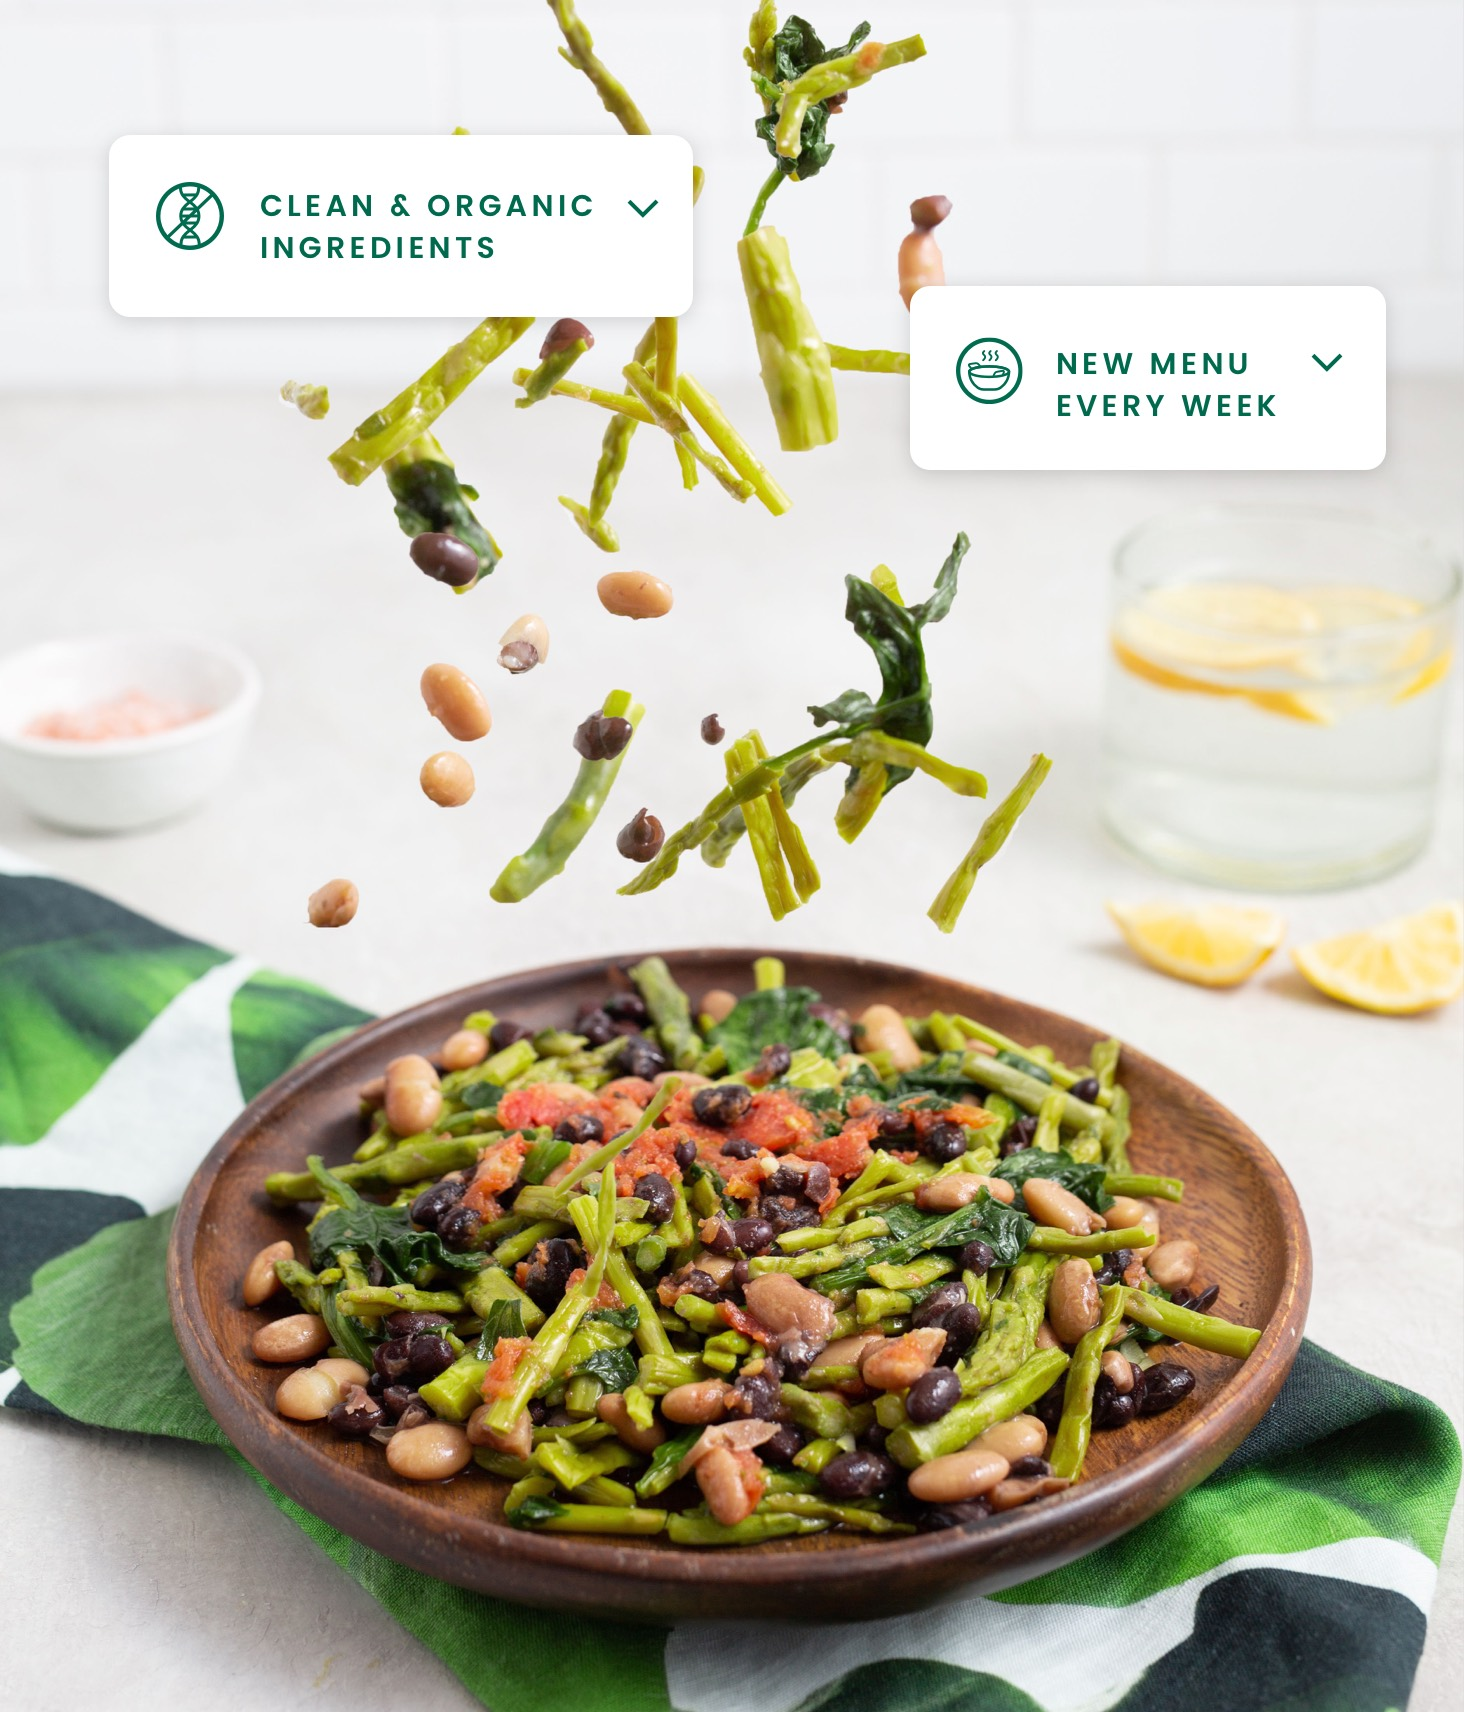 Asparagus vegan dish with beans